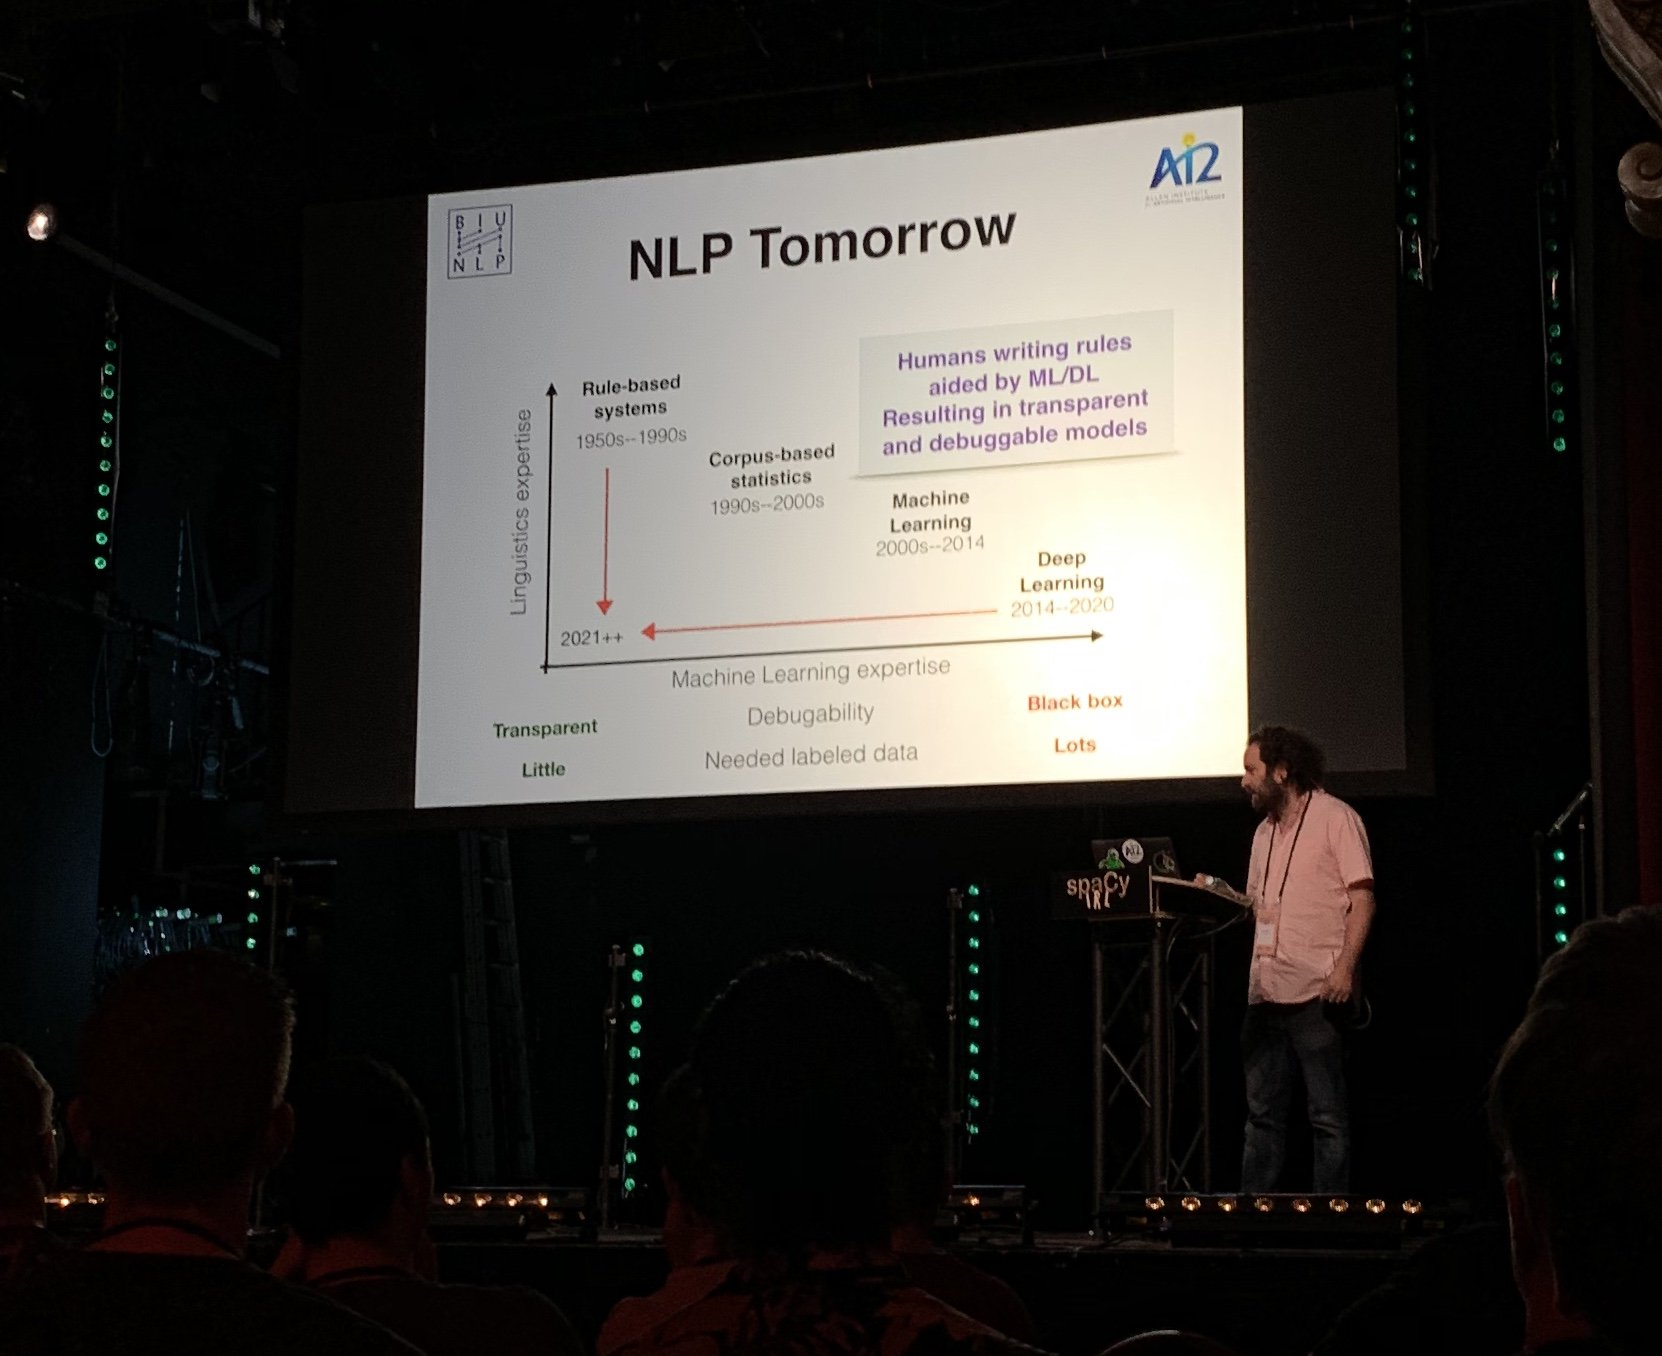 Yoav discussing the trends in NLP, and an ideal direction ahead.